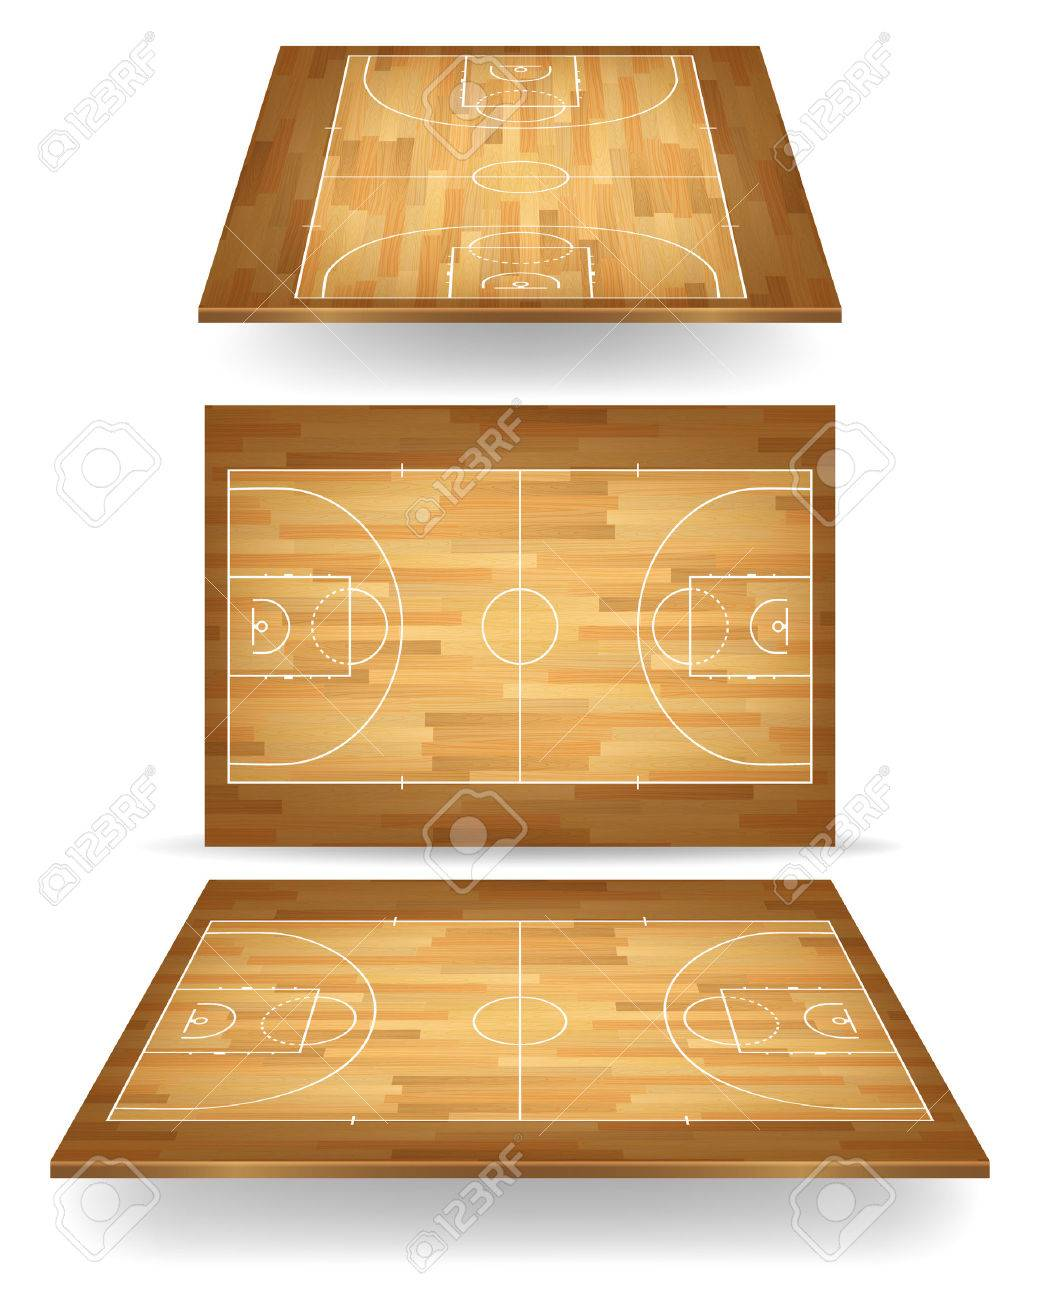 Wooden basketball court with perspective. Vector EPS10 illustration. - 39579303